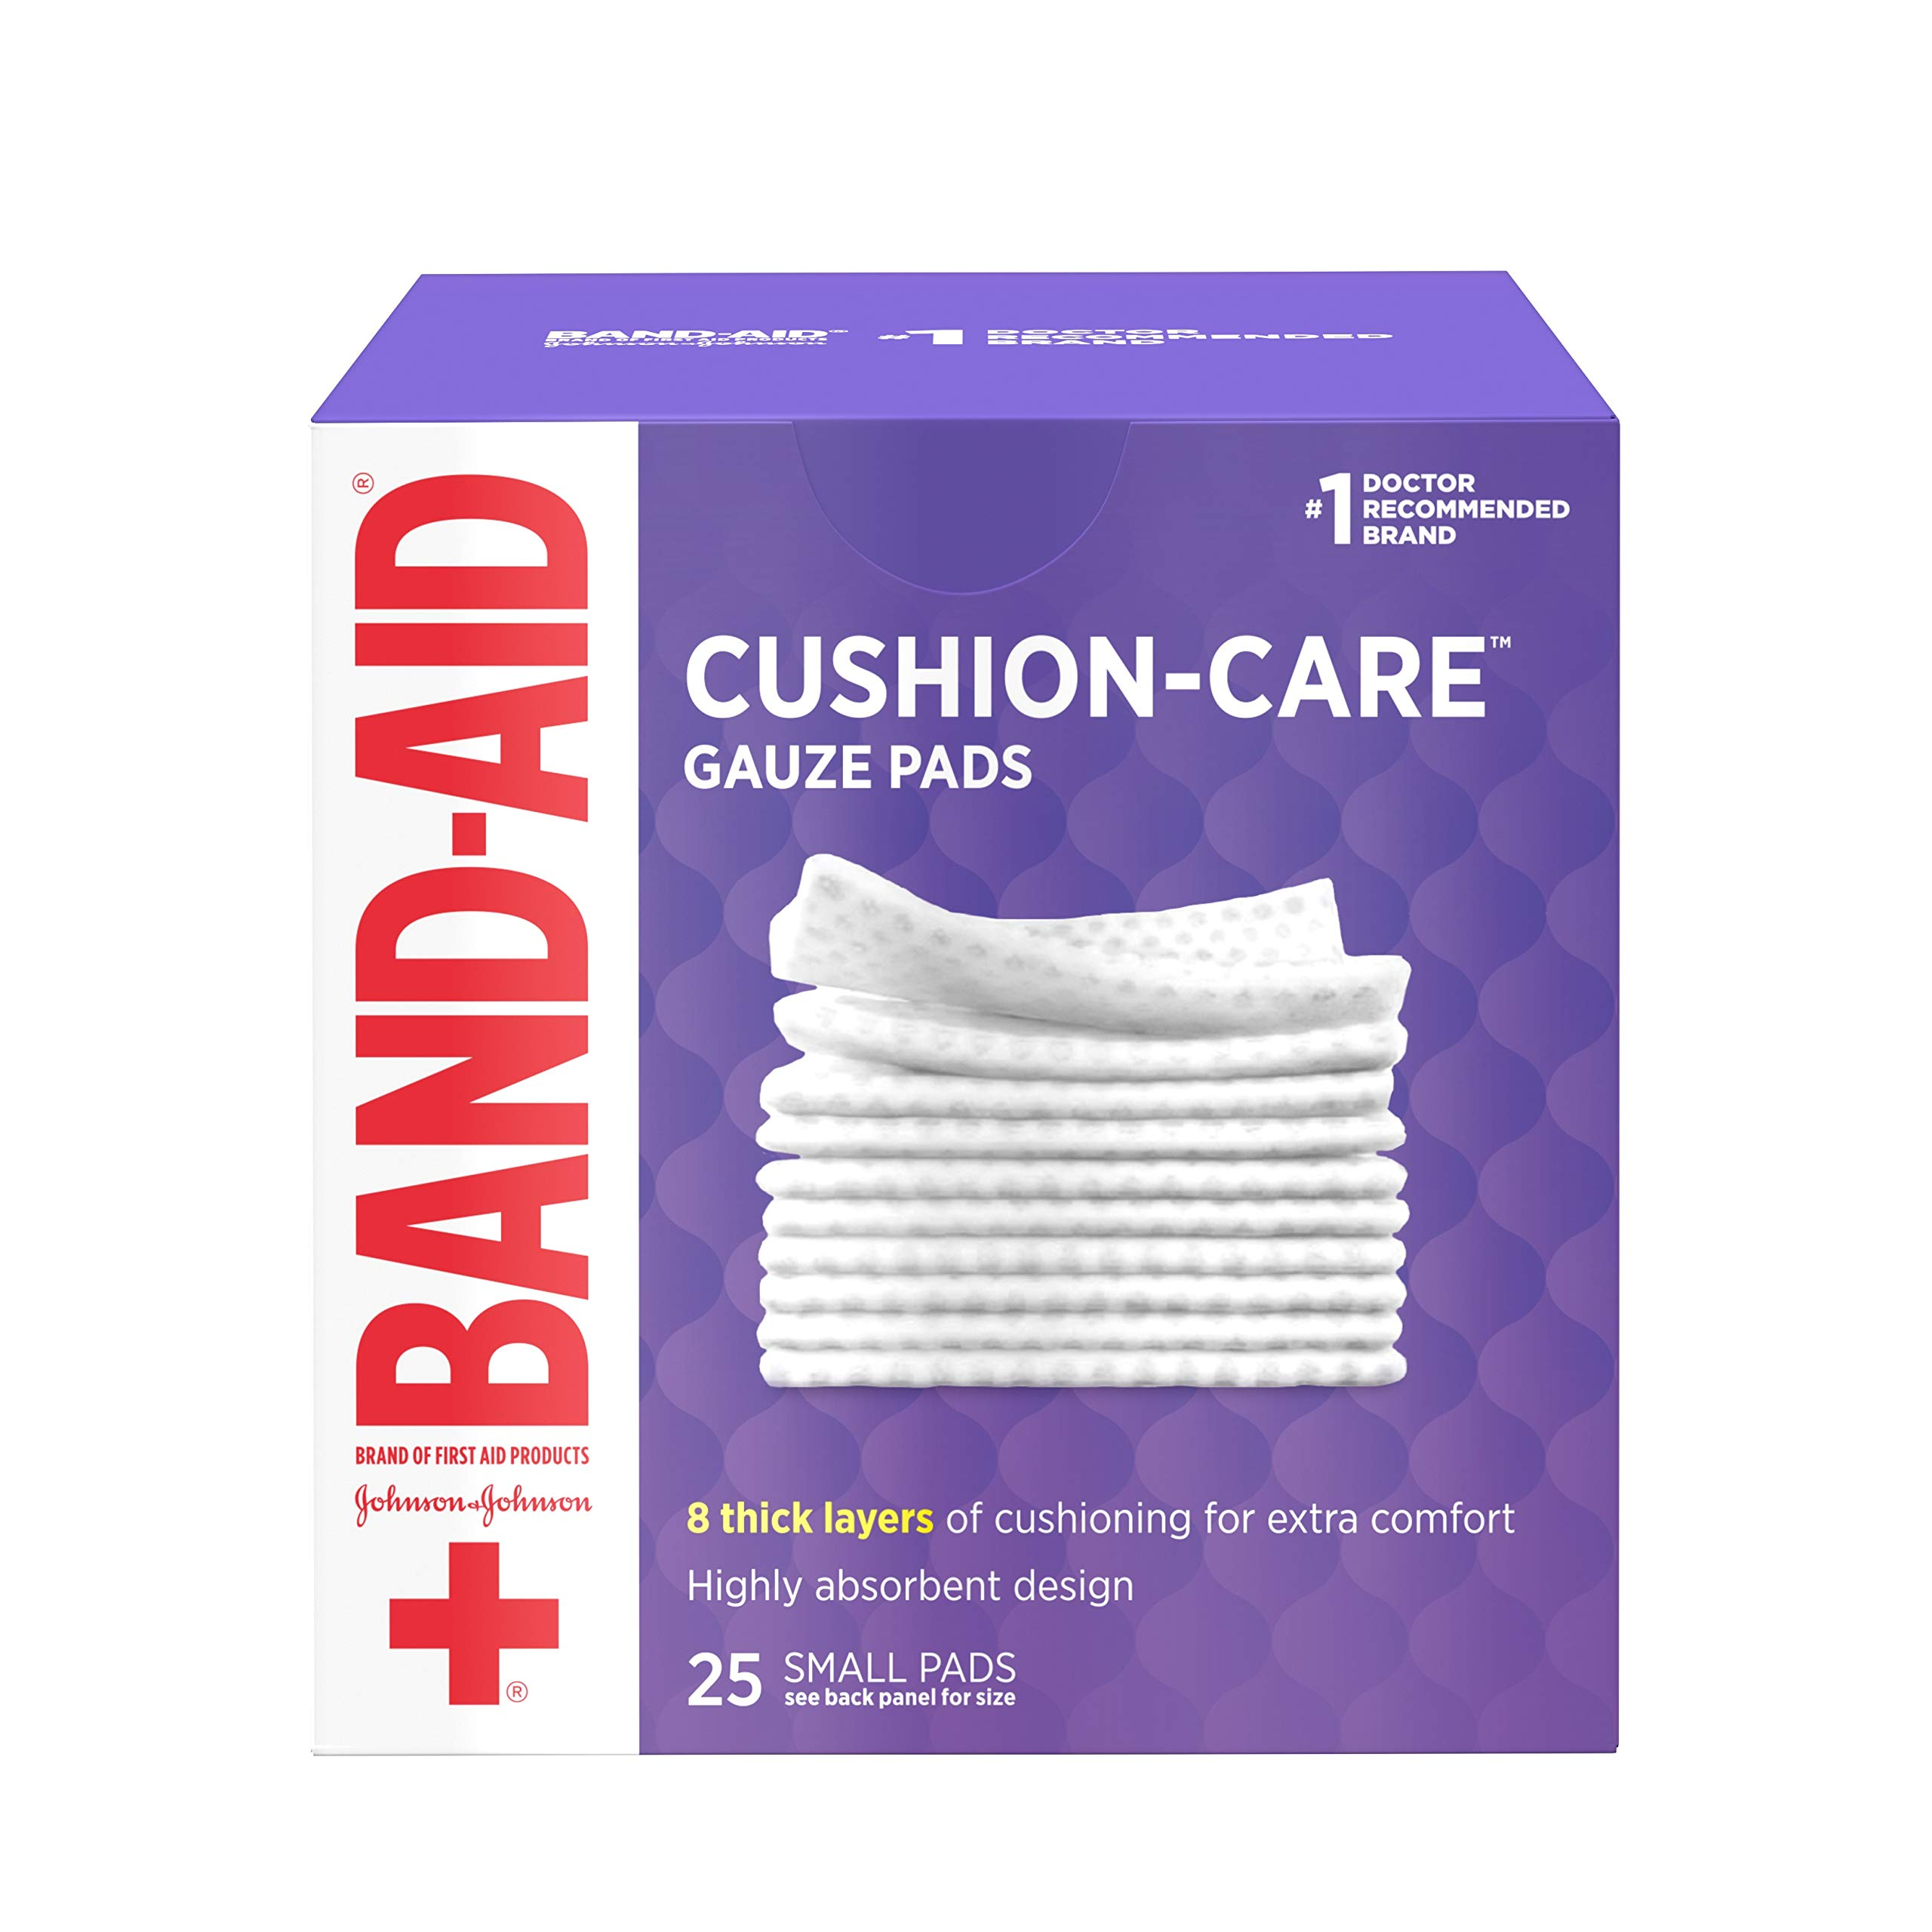 Band-Aid Brand Cushion Care Sterile Gauze Pads for Protection of Minor Cut, Scrapes & Burns, Non-Adhesive & Wound Care Dressing Pads, Small Size, 2 inches x 2 inches, 25 ct ( Pack of 4) by Bandaid